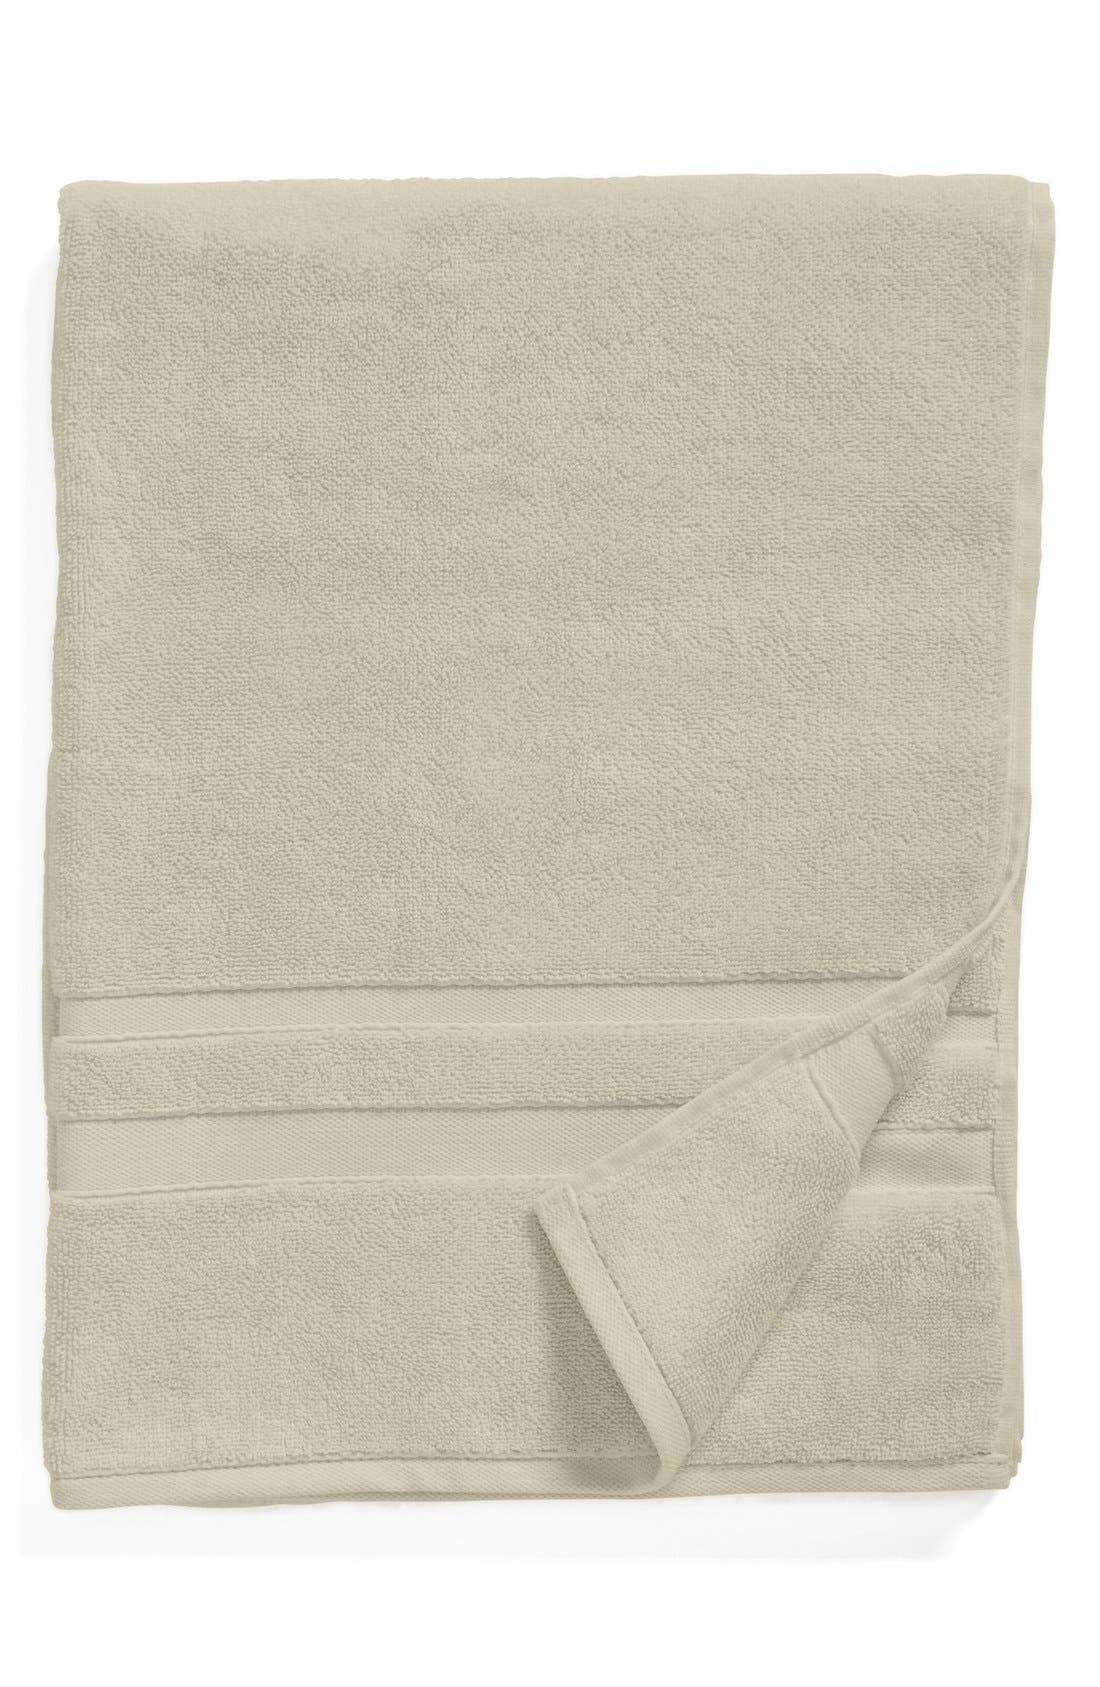 Waterworks Studio 'Perennial' Turkish Cotton Bath Towel (Online Only)